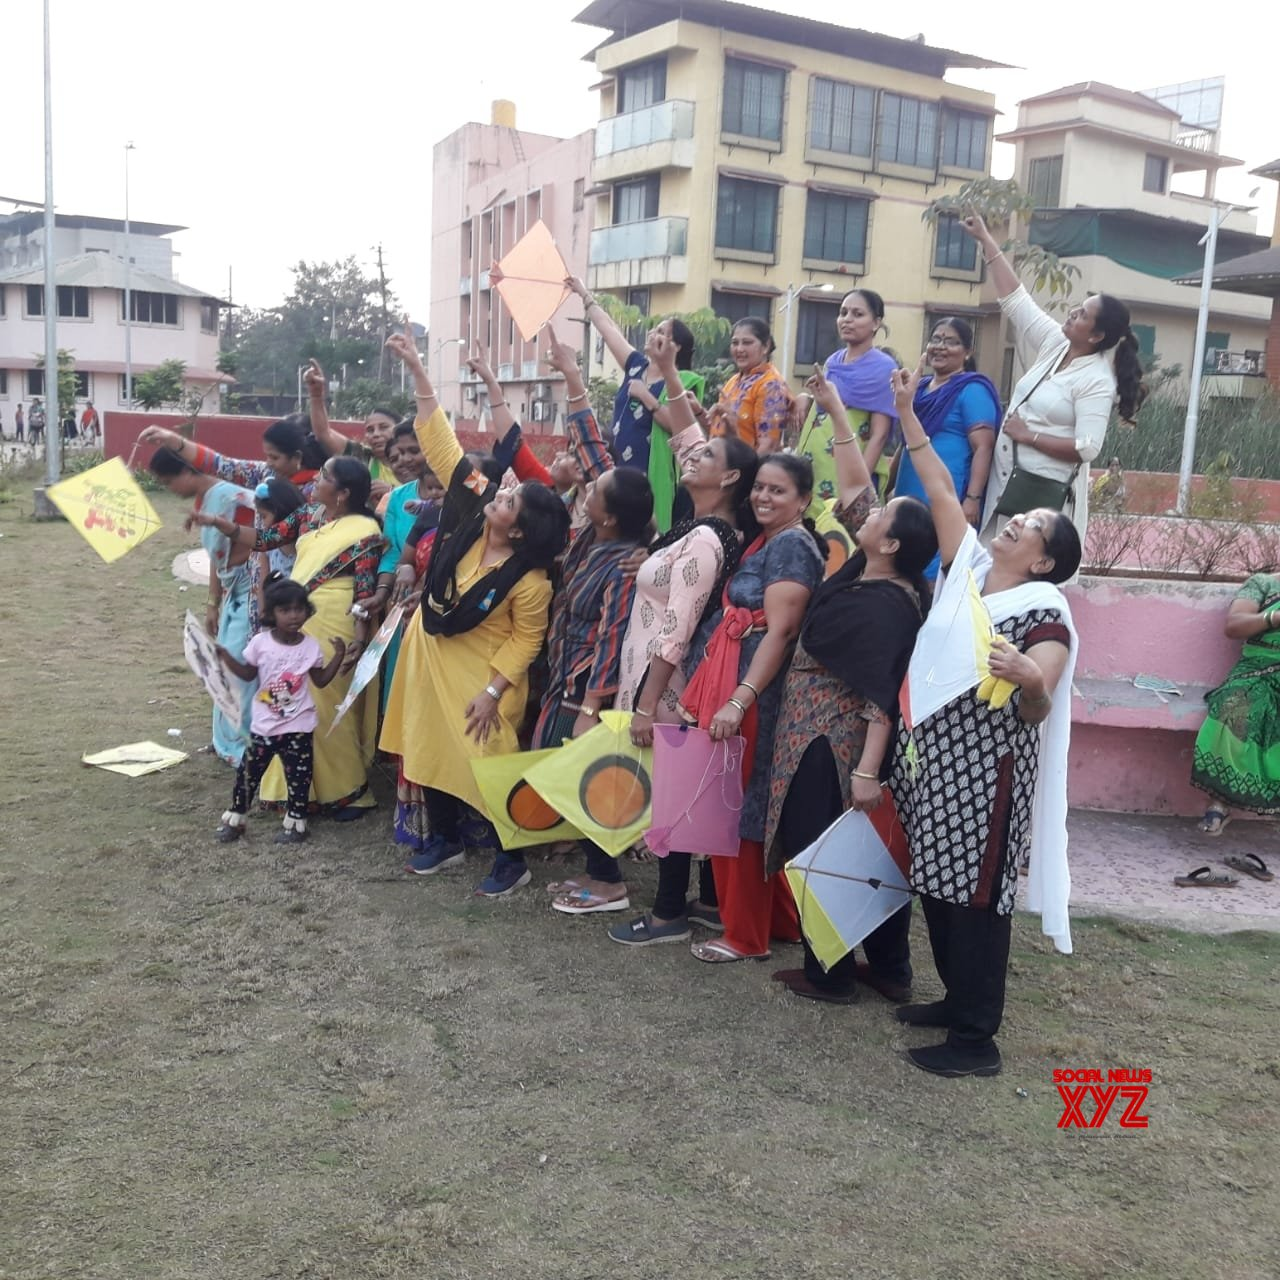 Raigad: Maha women, LGBTQ fly kites for 'freedom from oppression' #Gallery